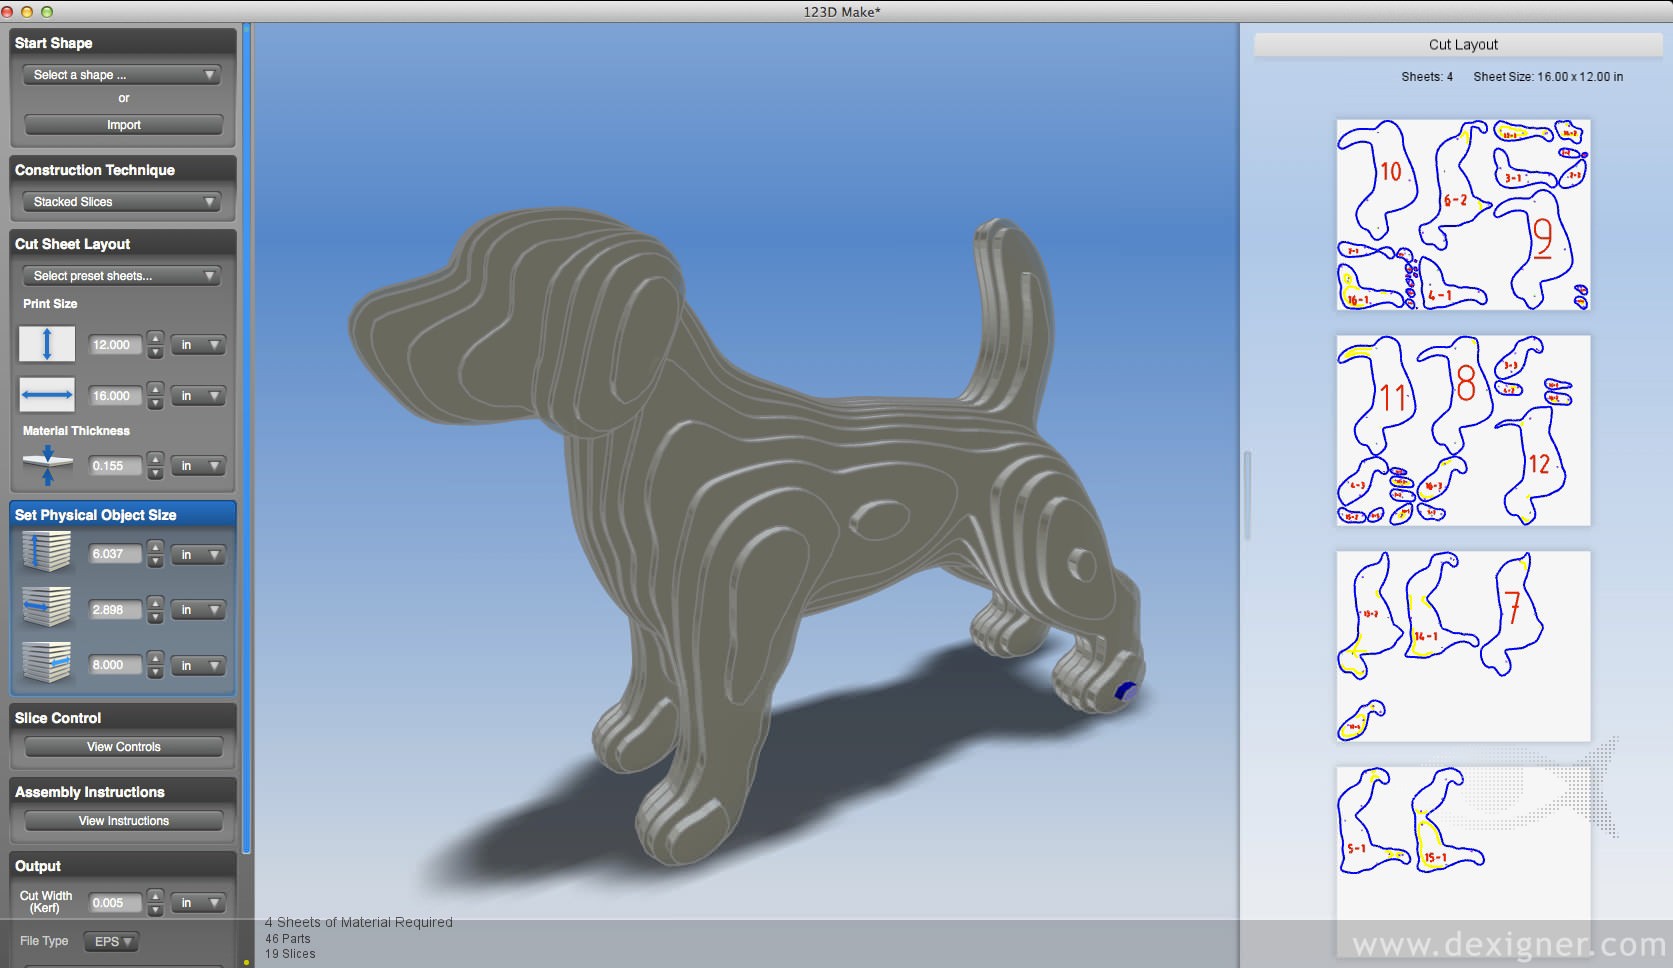 Autodesk 123D for Mac picture or screenshot